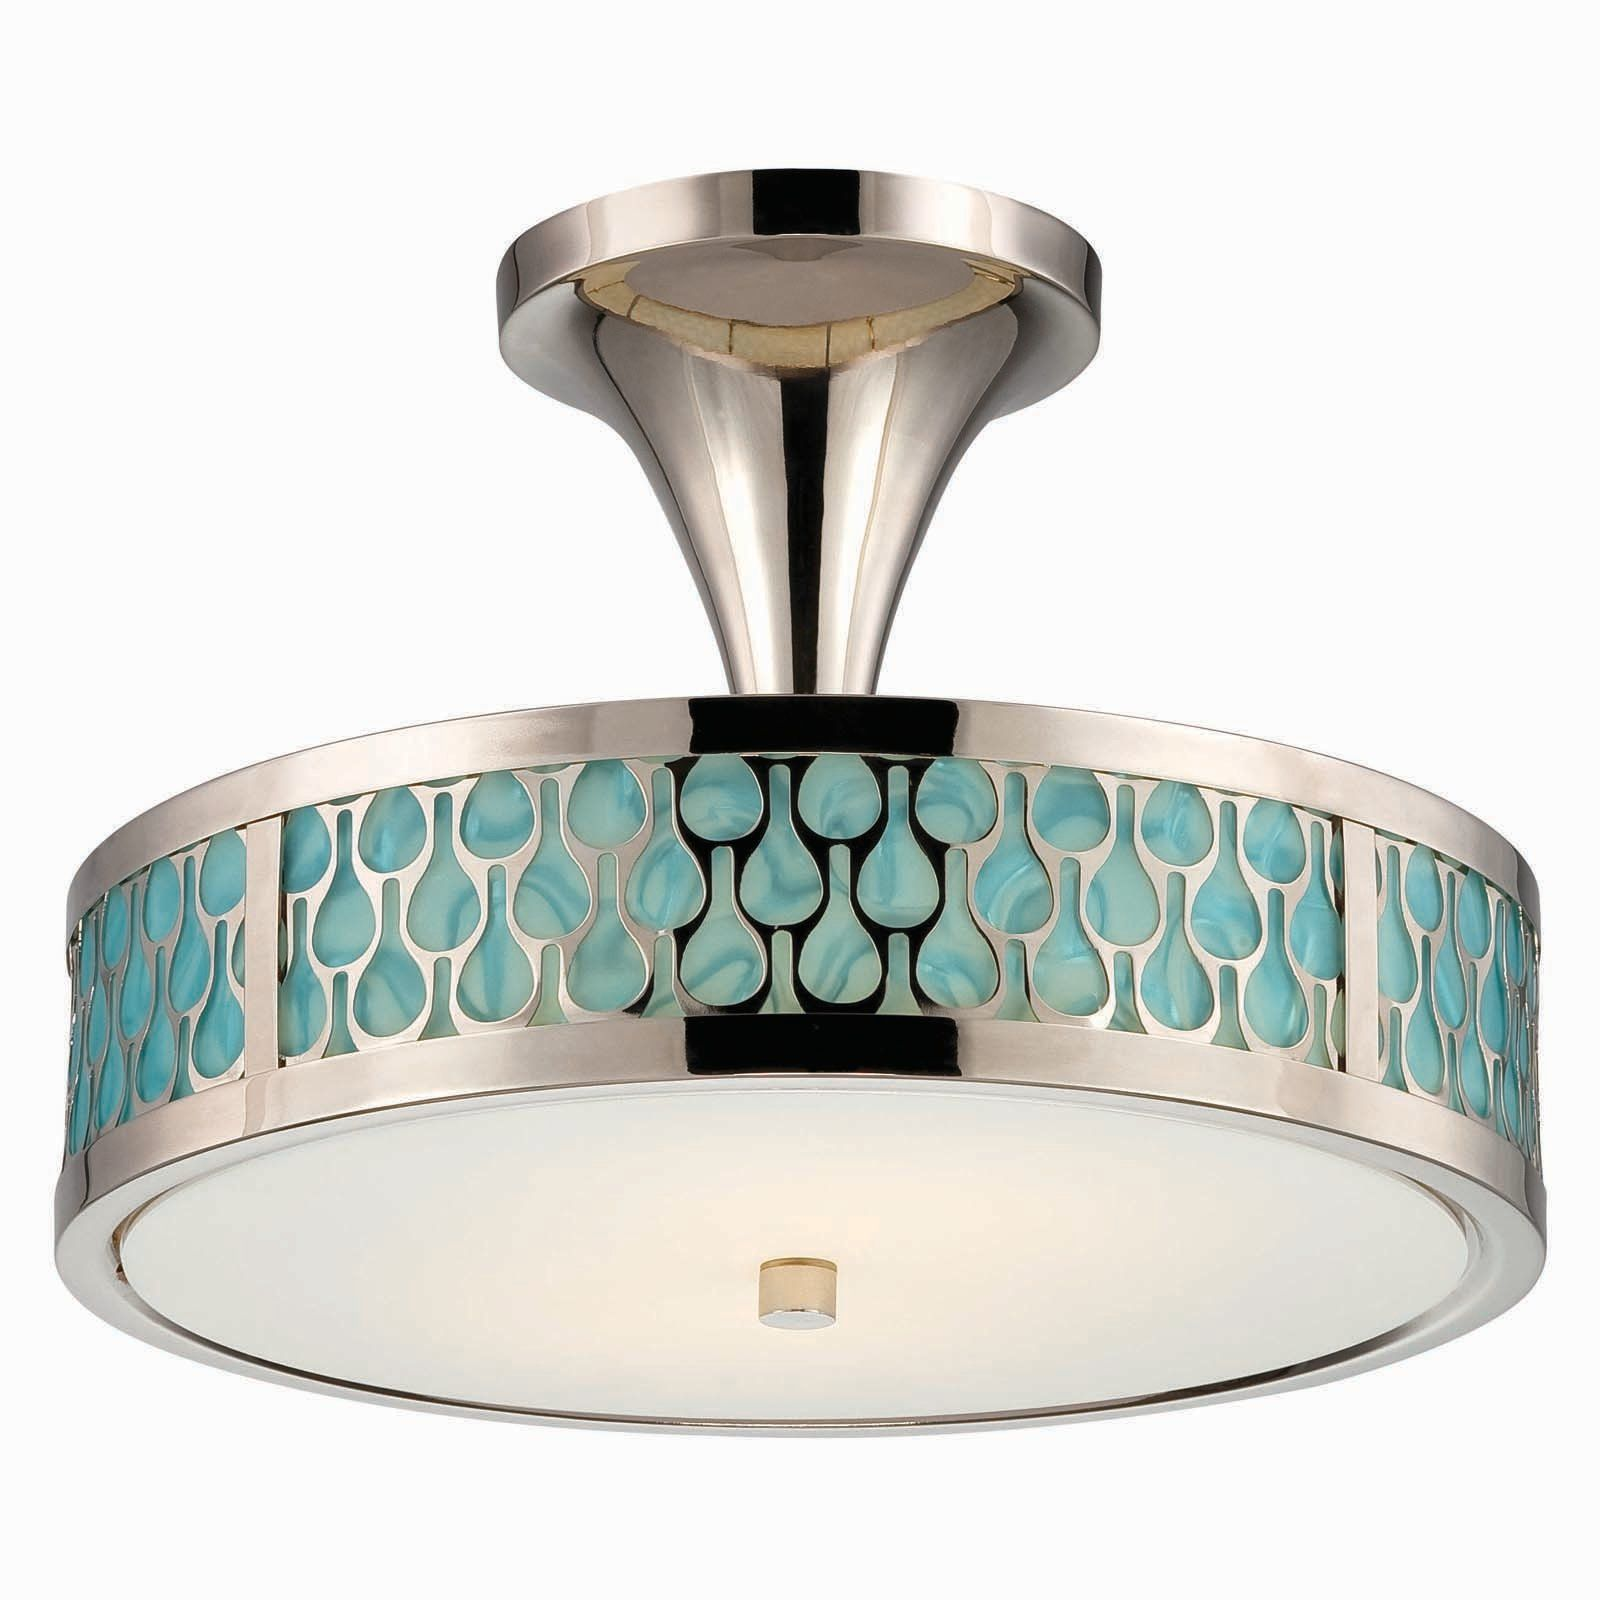 Have to have it nuvo raindrop led semi flush dome light 15w in nuvo raindrop led semi flush dome light 15w in arubaitofo Image collections